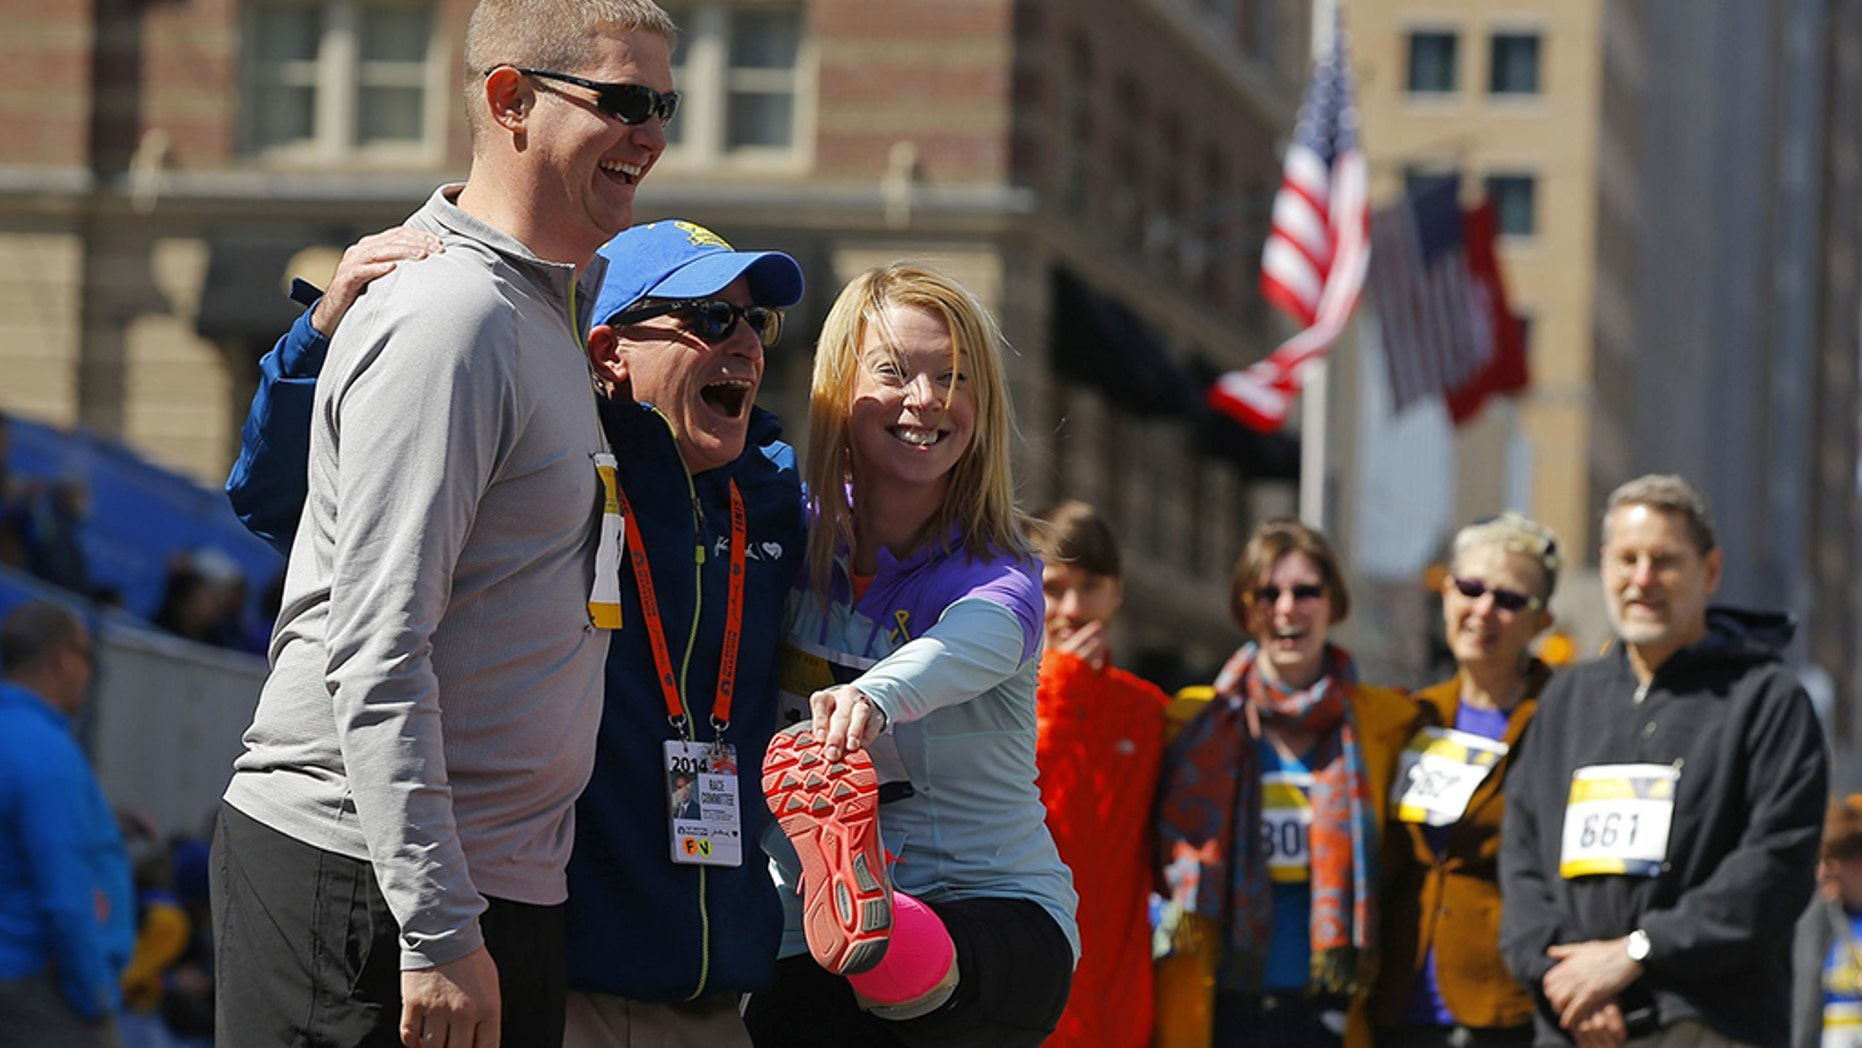 Adrianne Haslet-Davis: Boston bombing survivor hit by auto